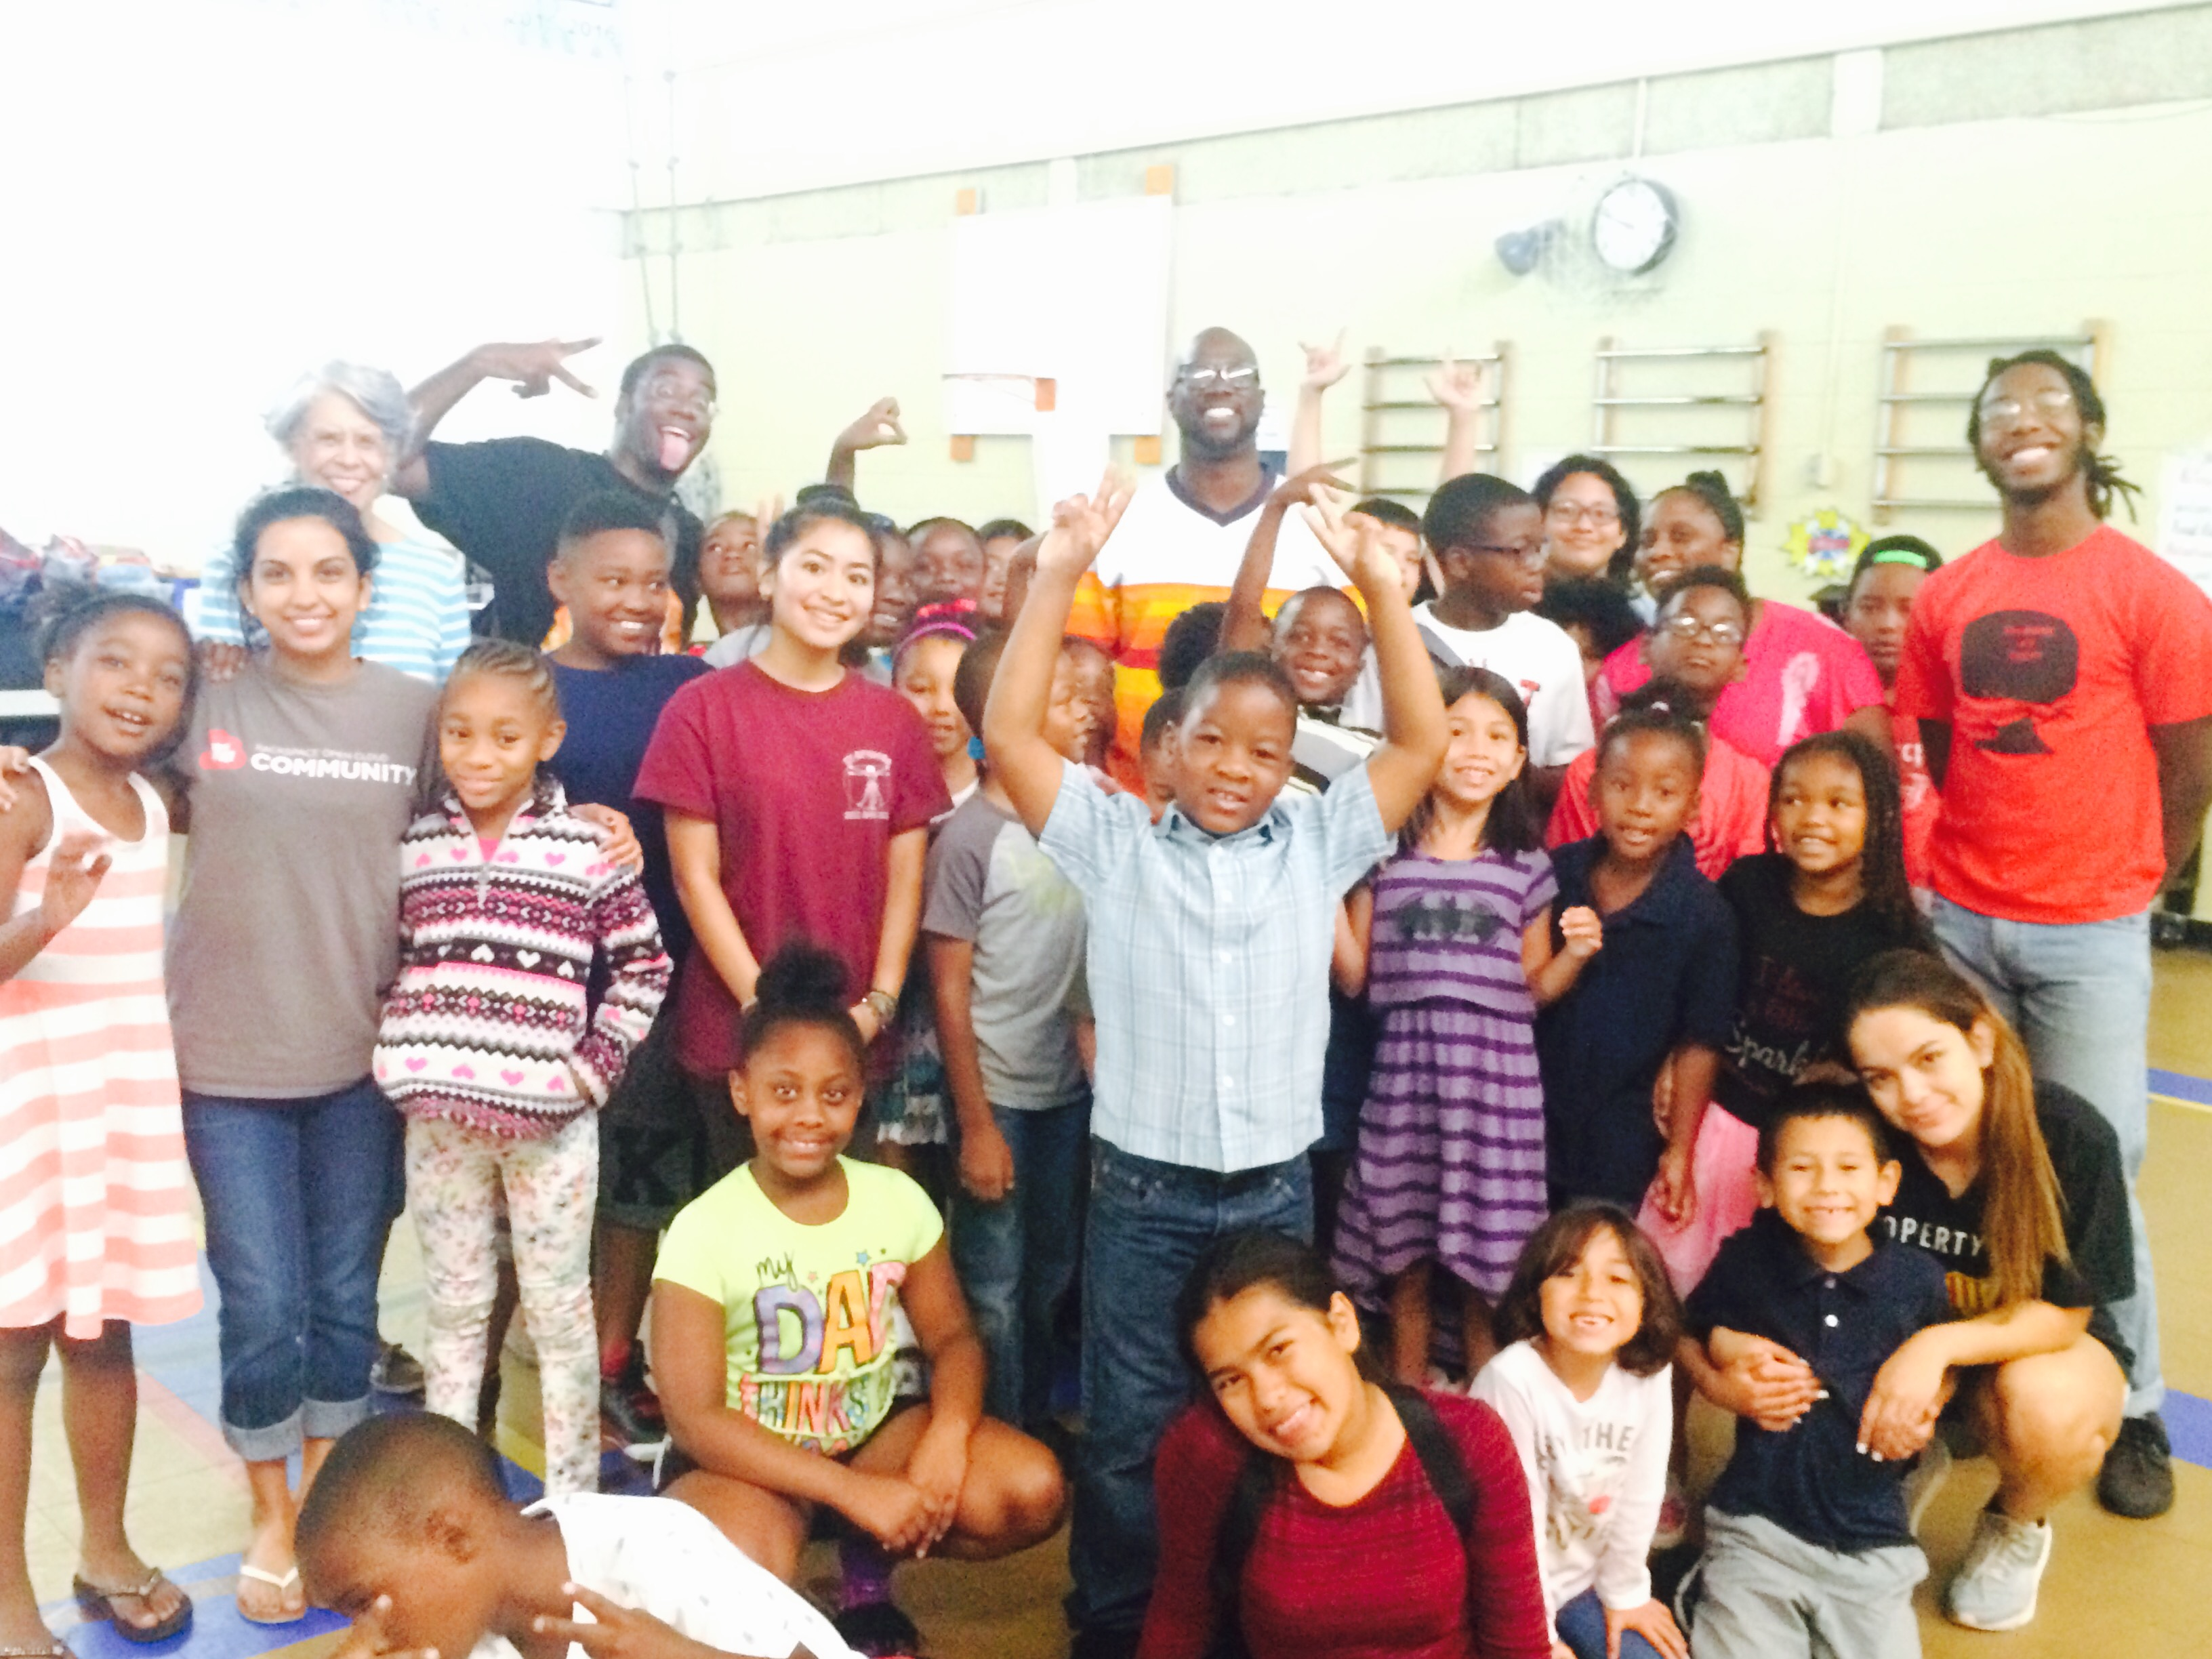 SaulPaul with the Children at Freedom School Austin